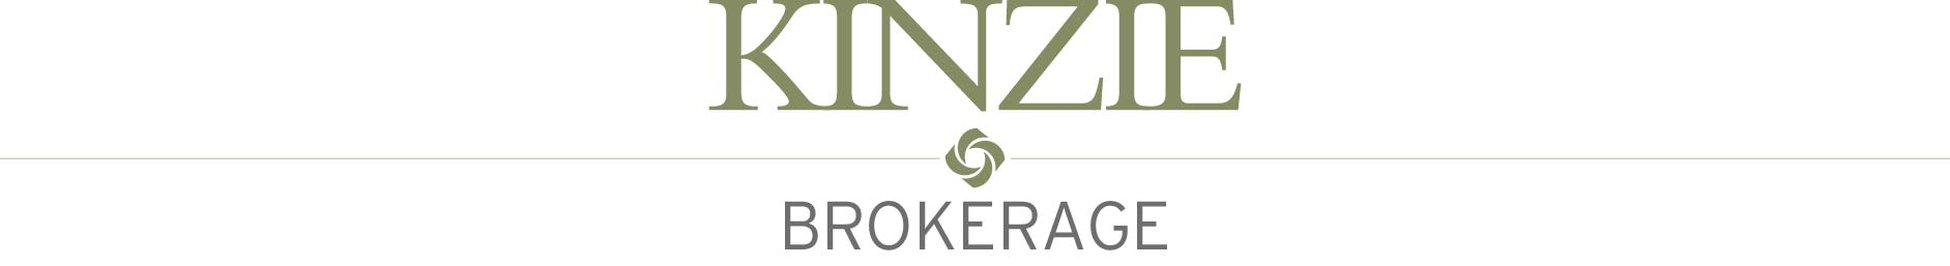 Kinzie Brokerage